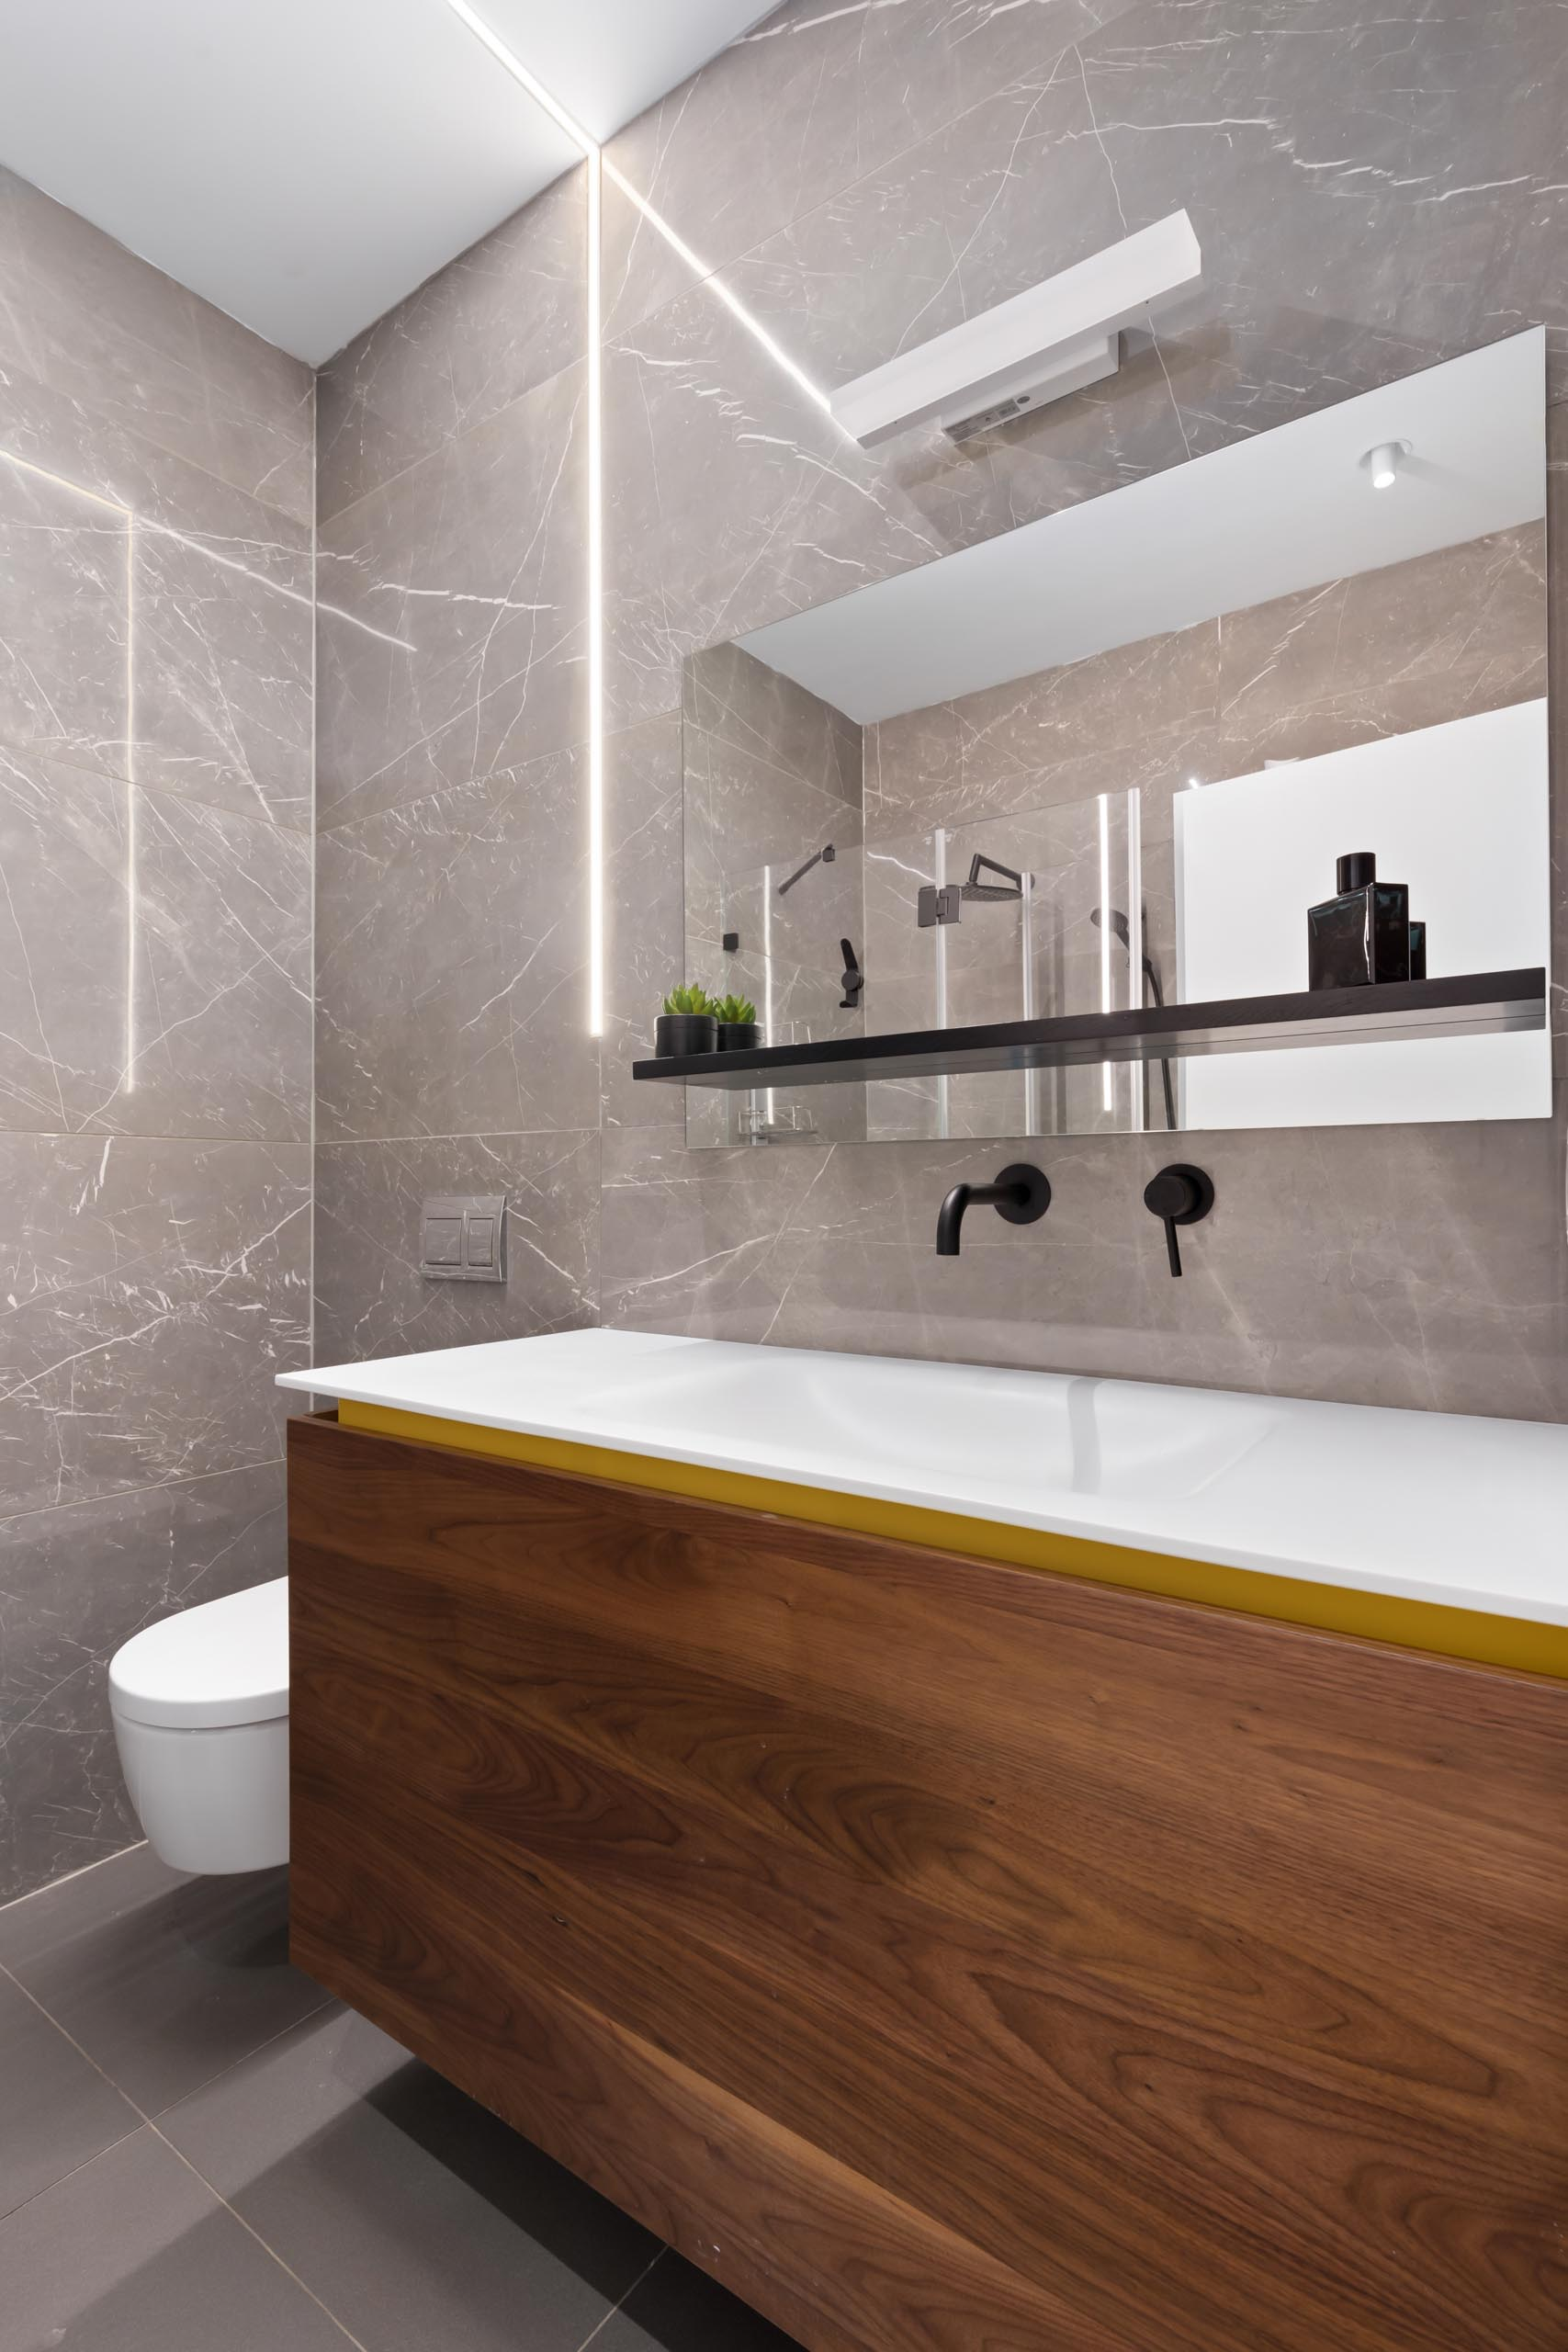 A modern bathroom with a wood vanity that includes a hint of yellow.